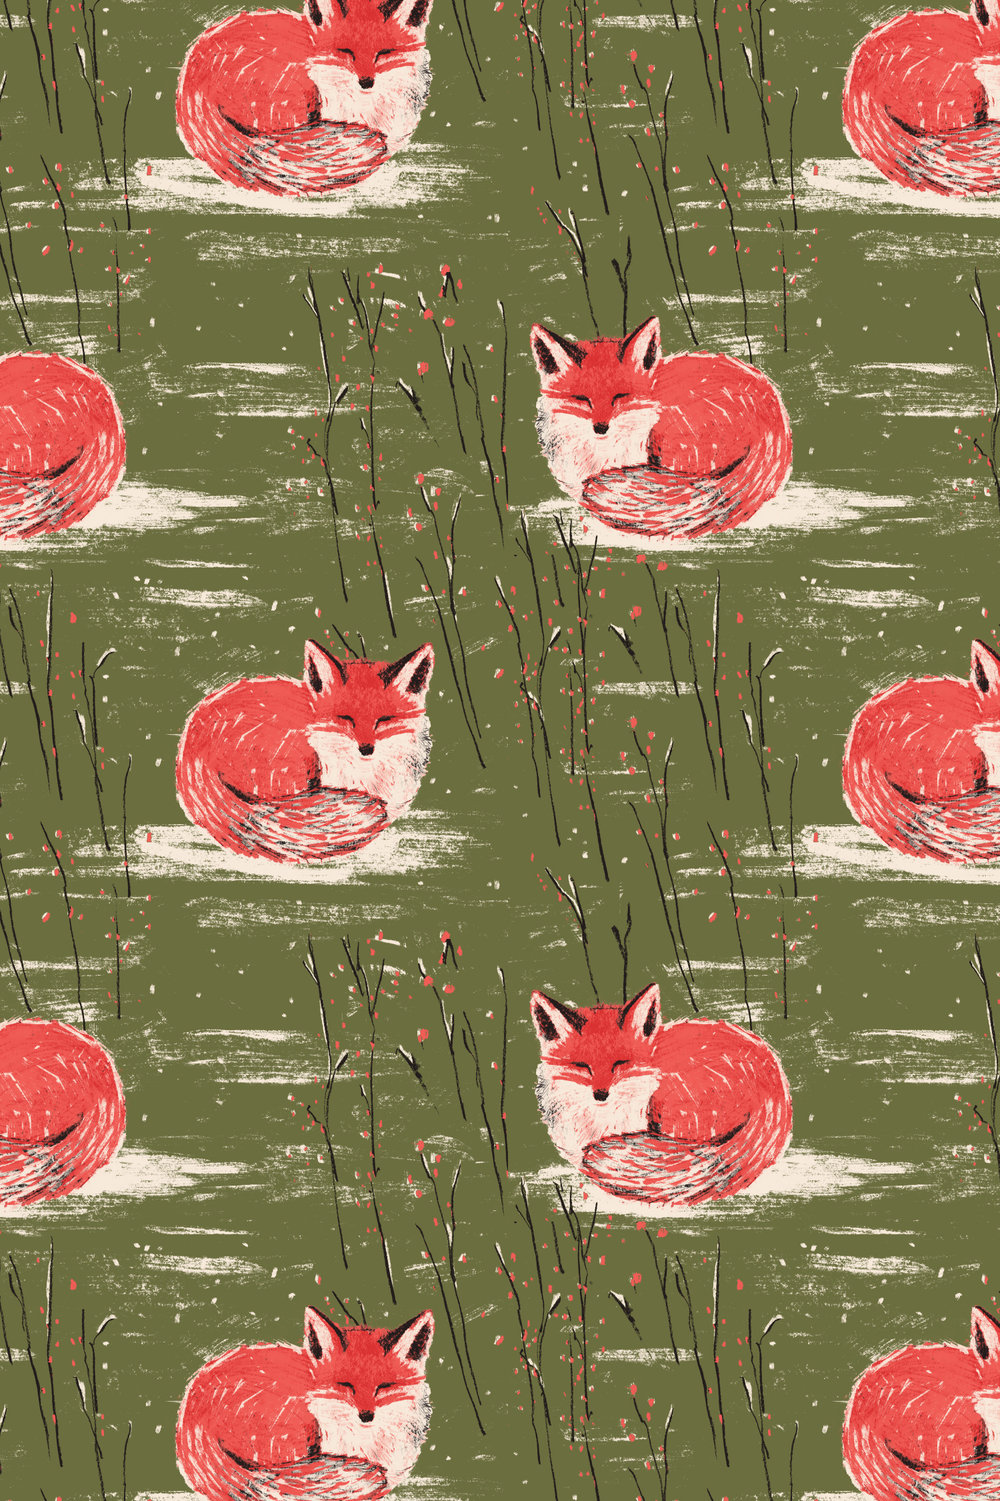 wh1-foxes-1500.jpg